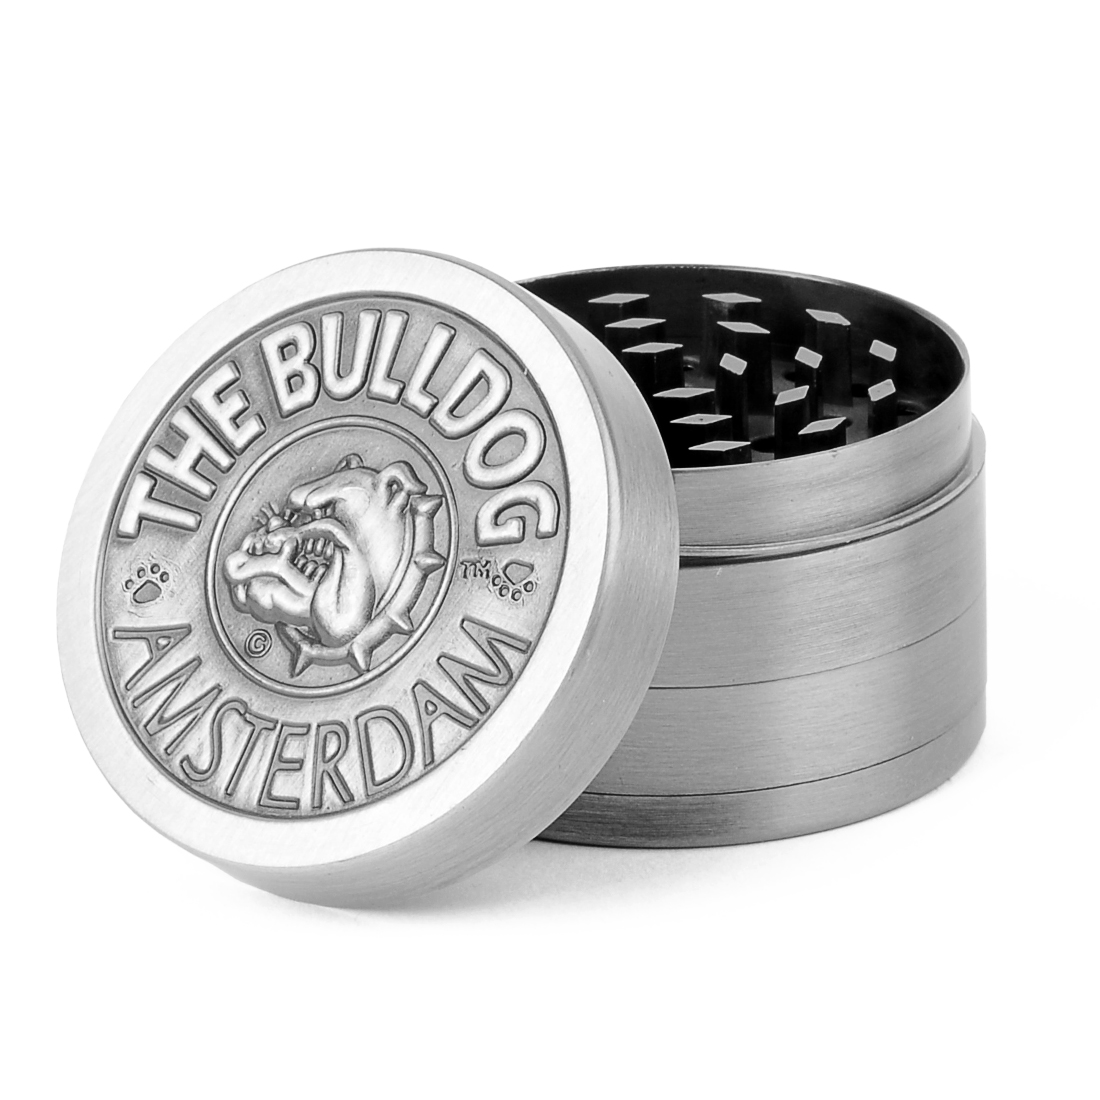 grinder polinator the bulldog